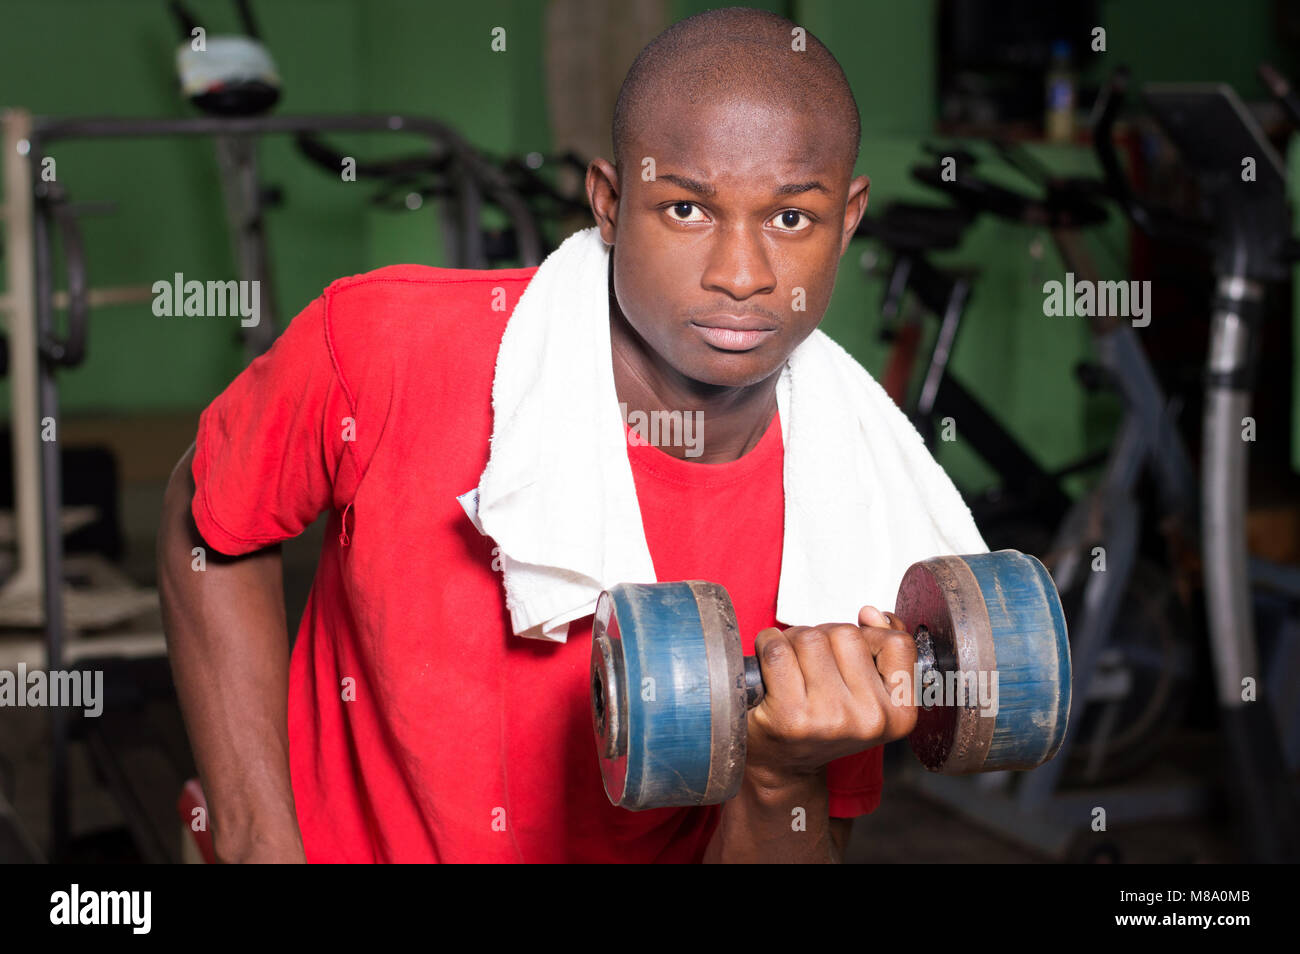 Young man doing weight lifting exercises with a weight in hand in a gym. - Stock Image